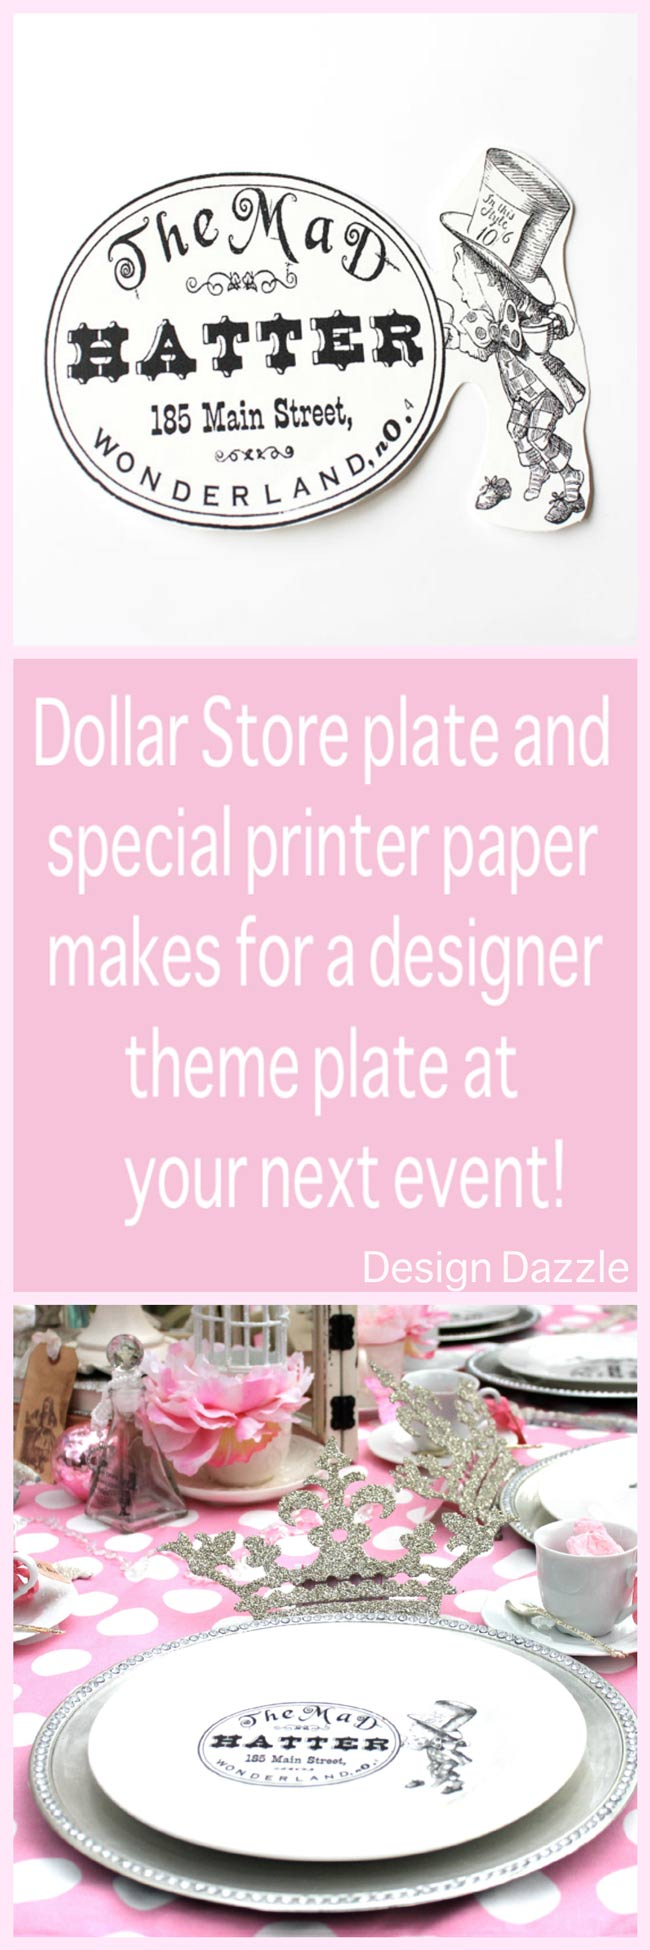 How to make a designer plate from the dollar store using special printer paper - Design Dazzle #dollarstore #printercrafts #tablescape